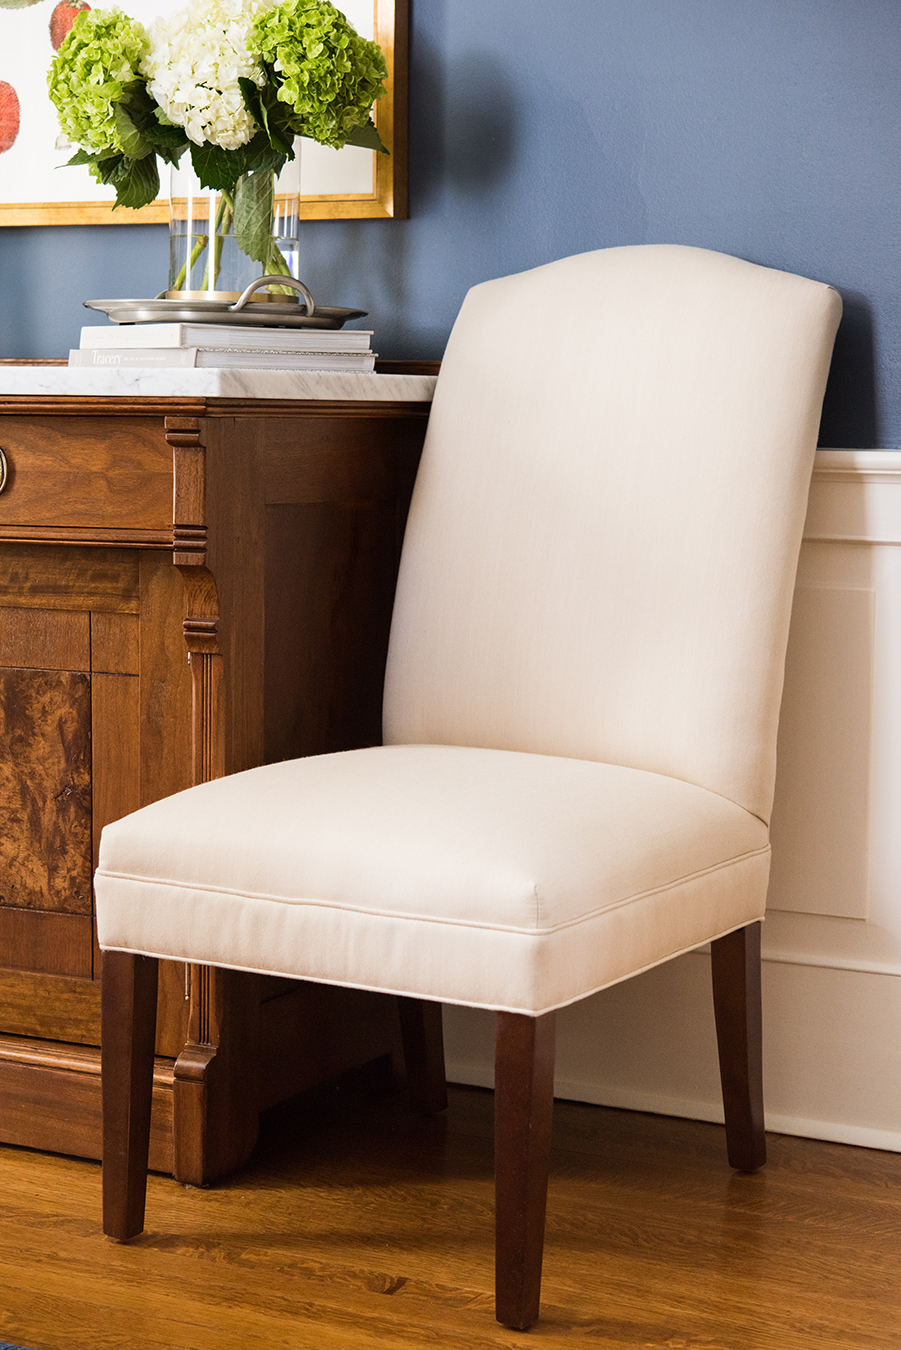 Kid friendly dining chair